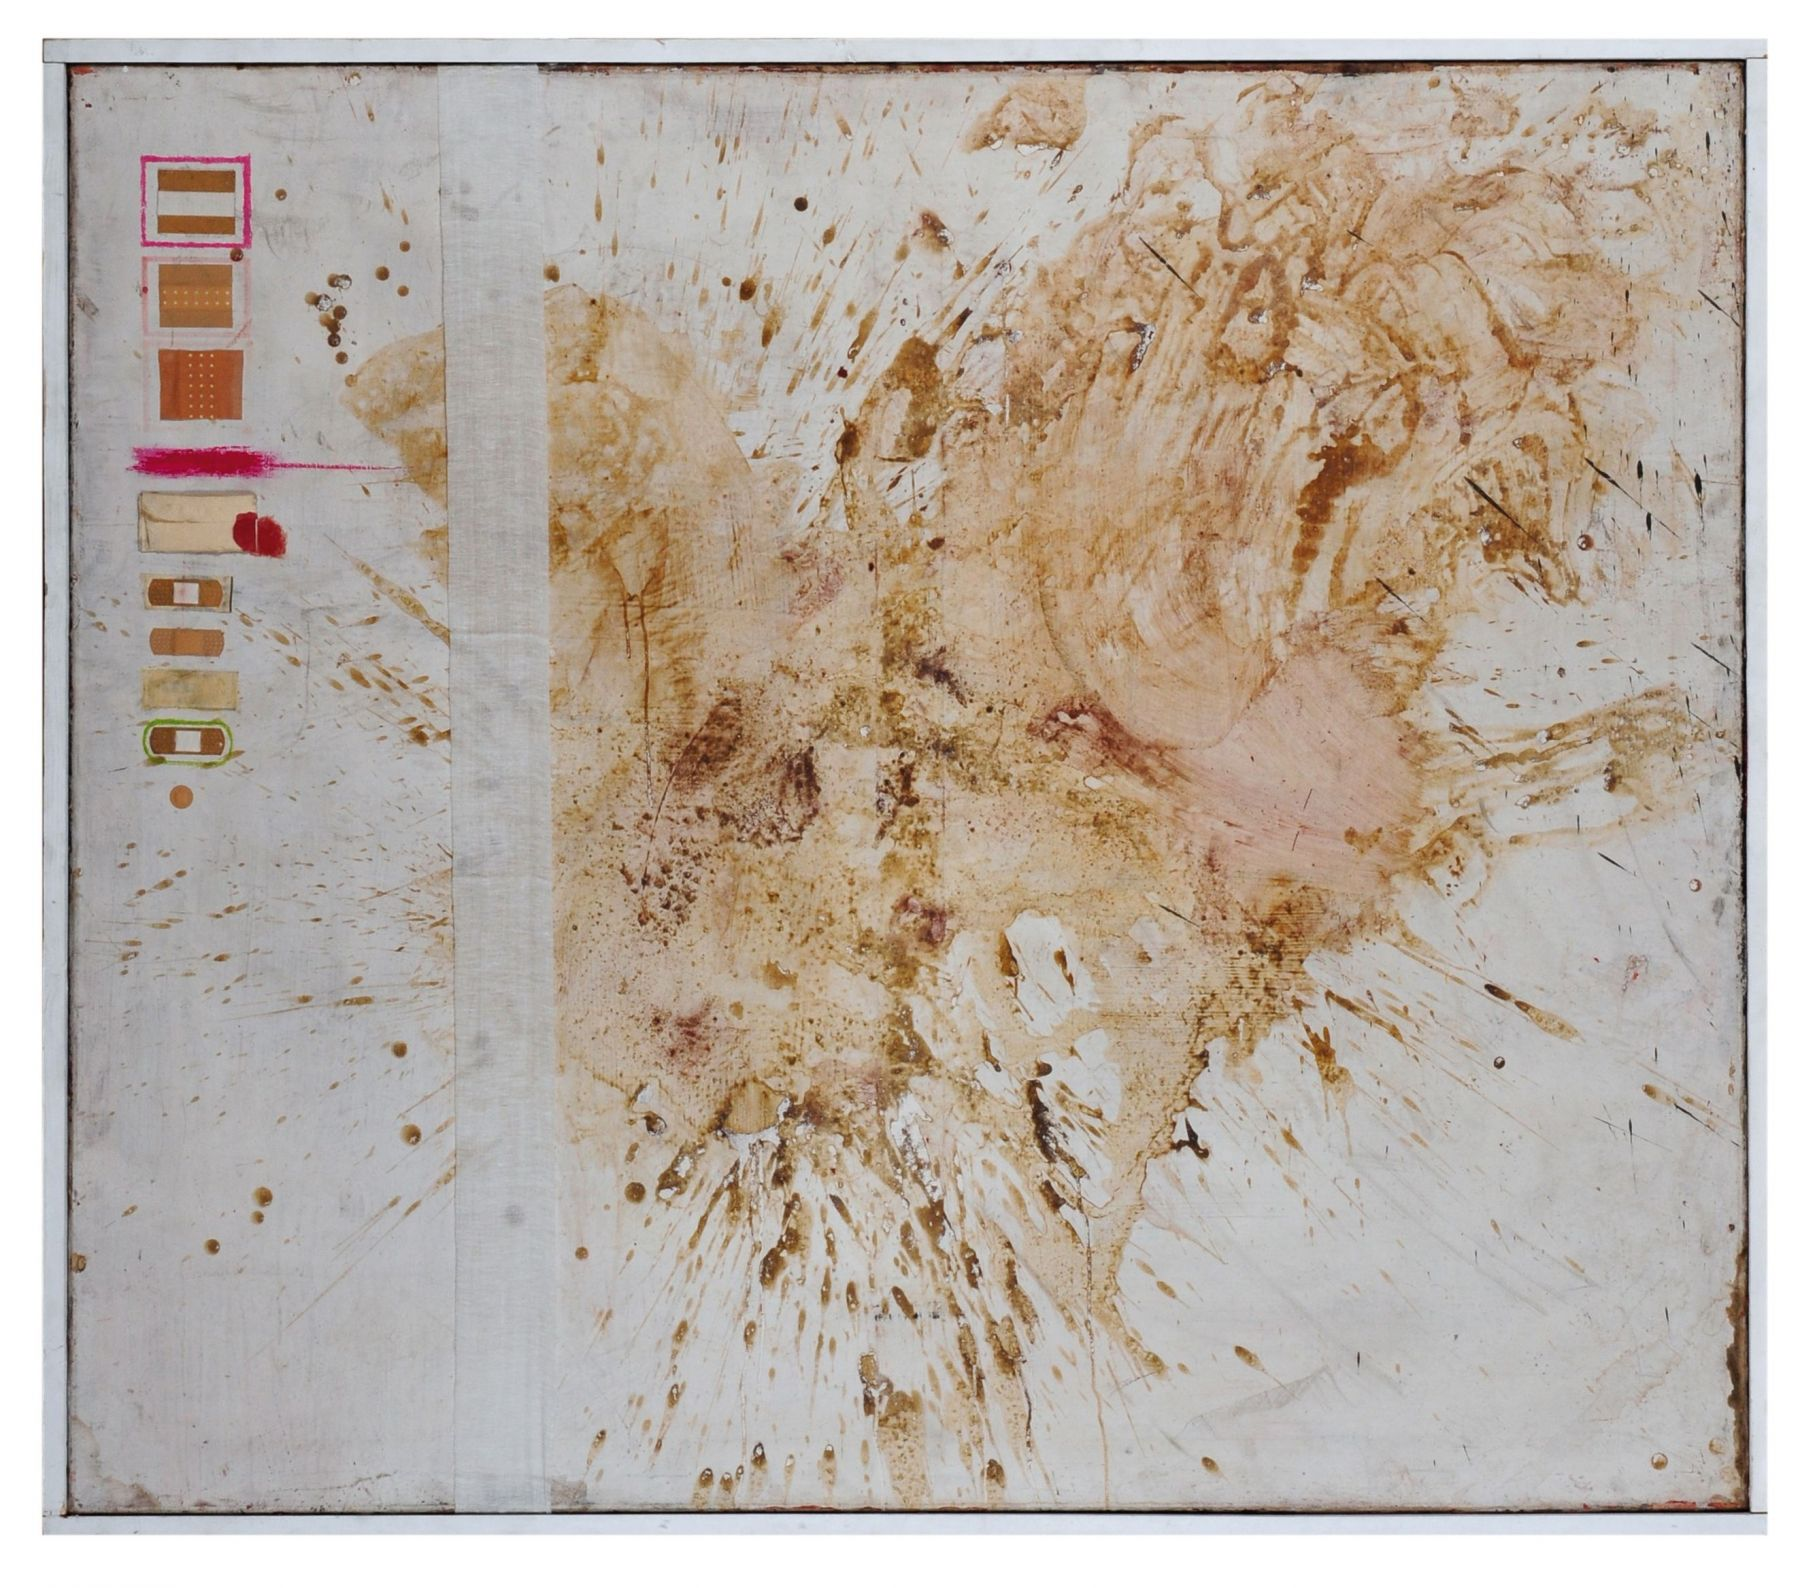 Hermann Nitsch, Untitled (relic montage), 1962, revised in 1963